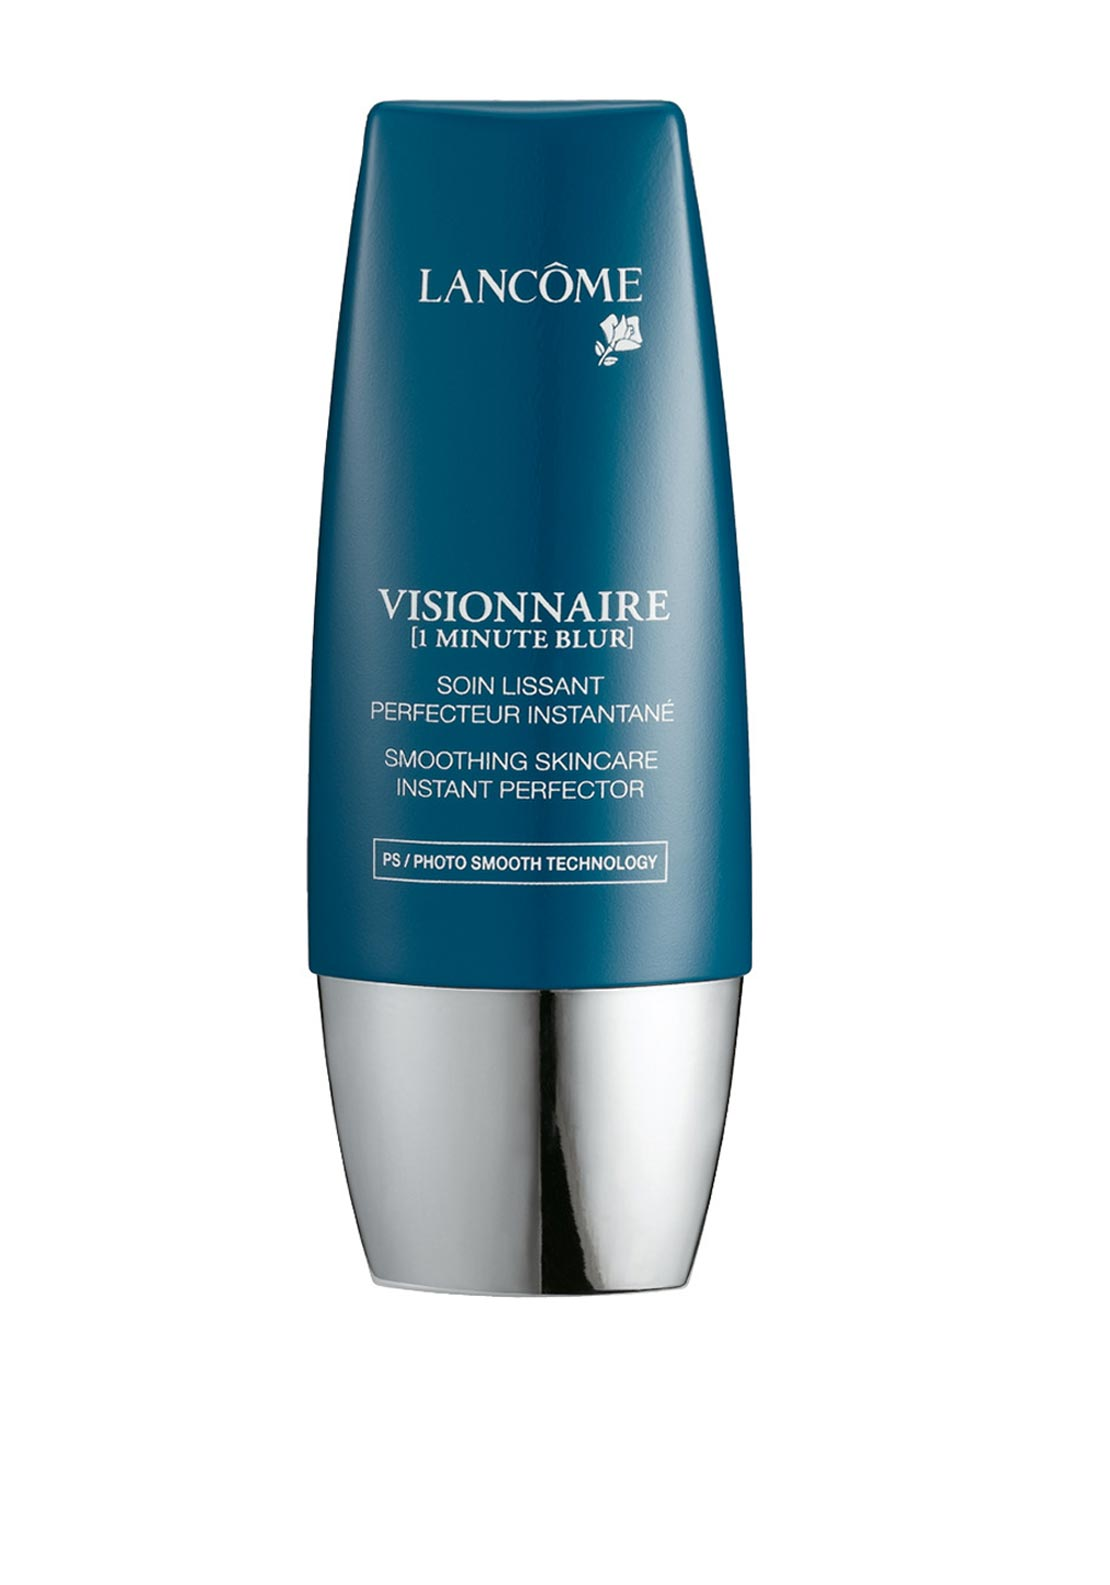 Lancome Visionnaire Blur Instant skin perfector, 30ml